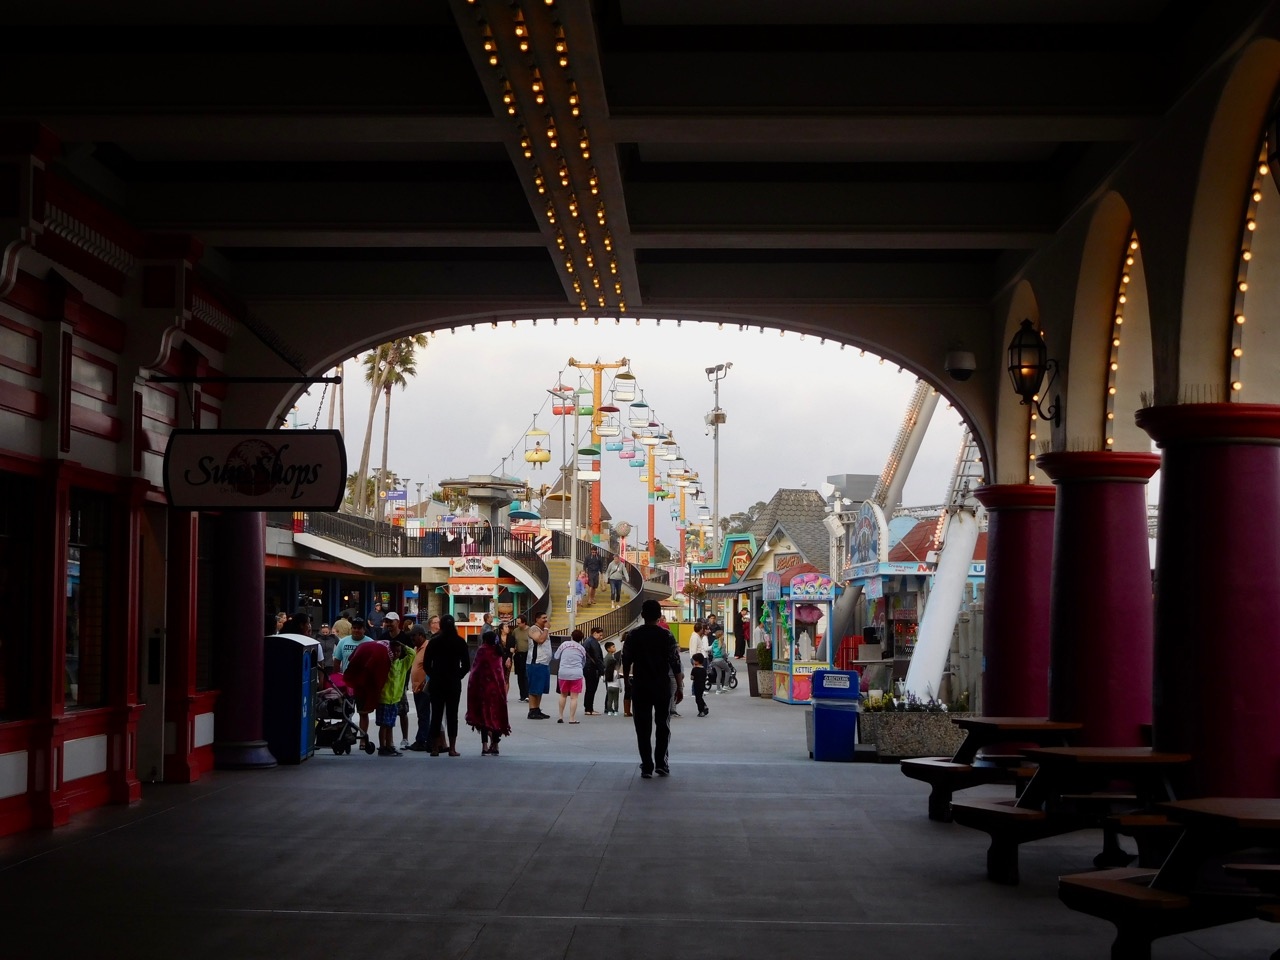 A few days in Santa Cruz - Arriving at the Boardwalk Amusement Park [04]